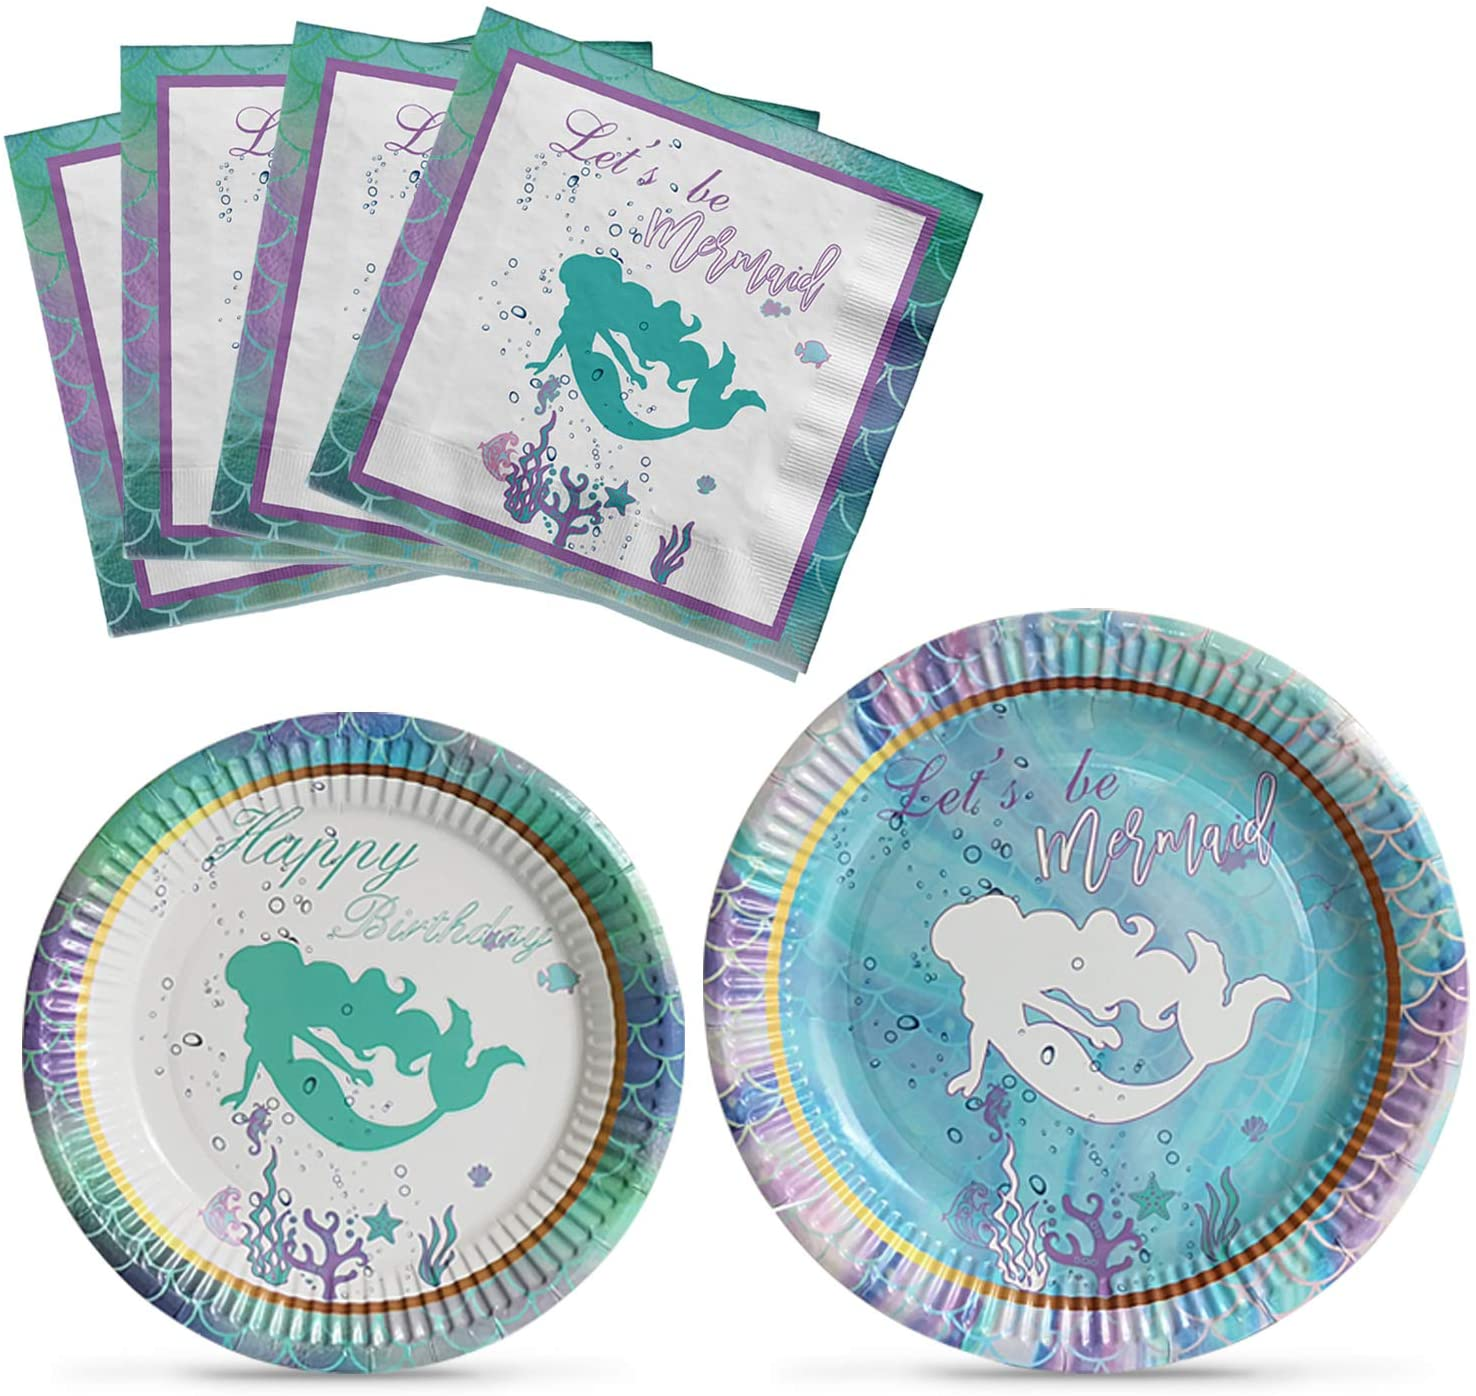 NAIWOXI Mermaid Birthday Party Supplies kit - Mermaid Plates and Napkins Party Decorations for Girls Birthday Baby Shower Wedding Serves 16 Guests 48 Pieces